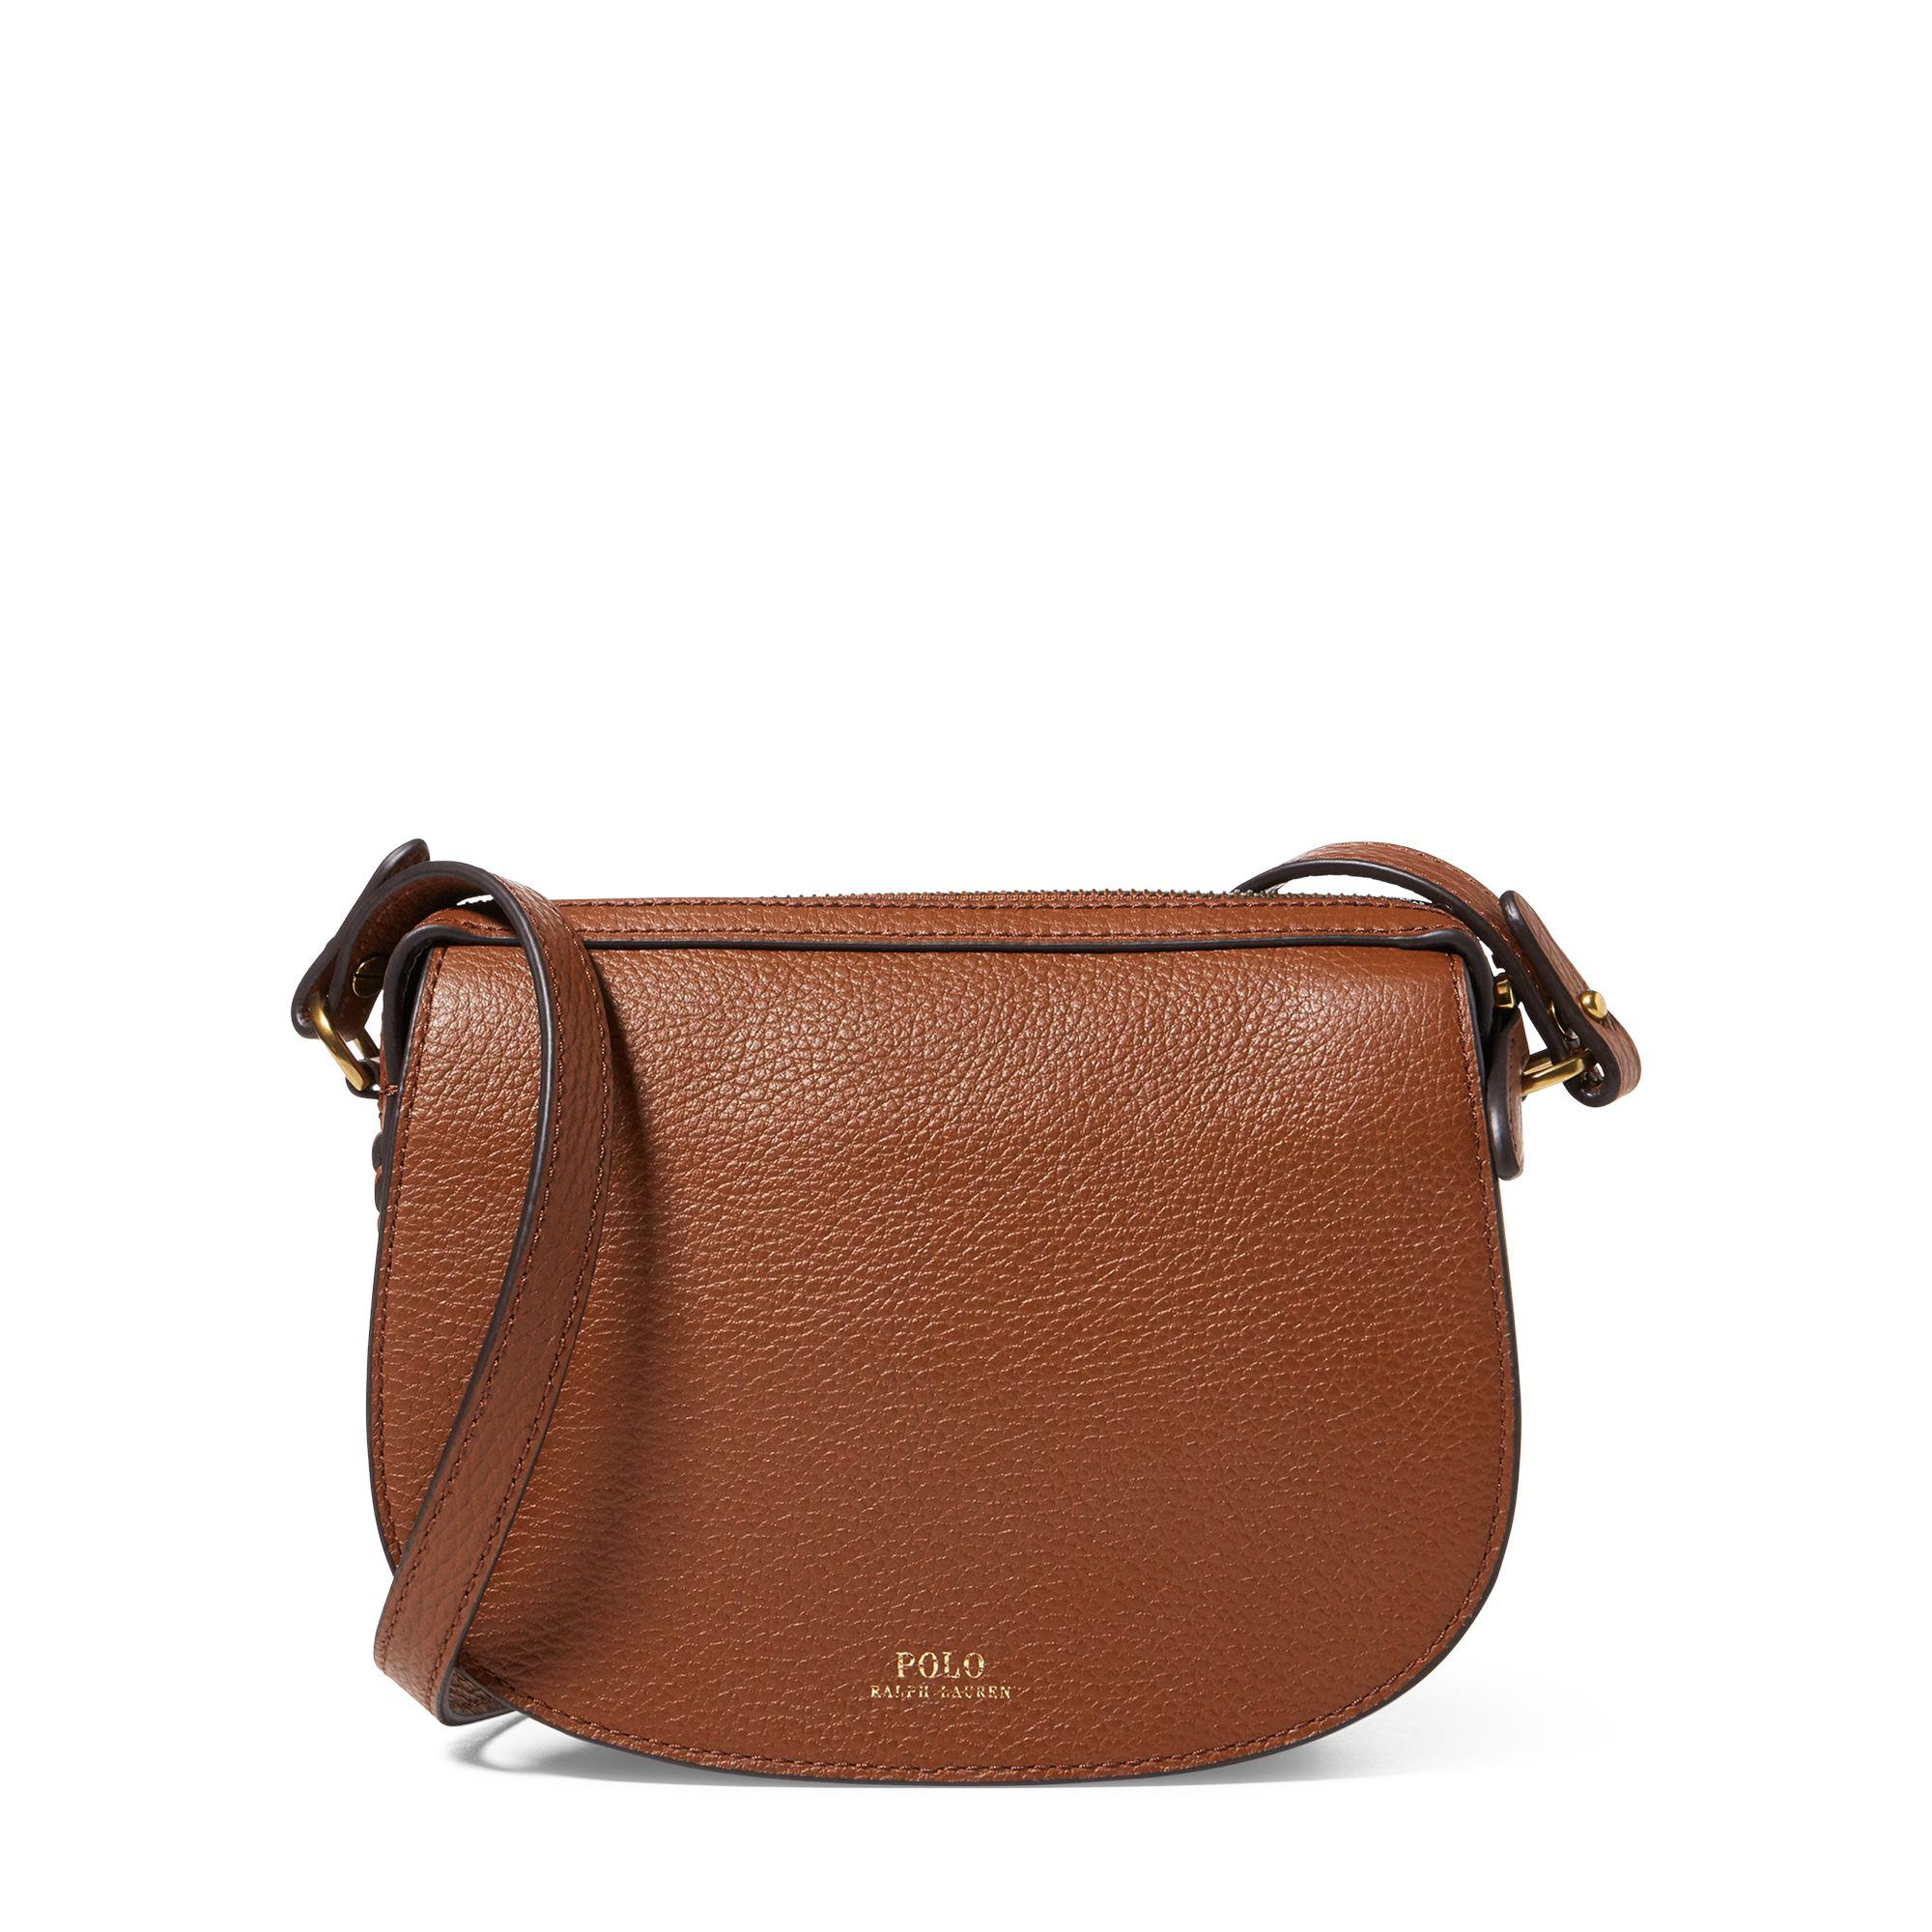 3a83181809 Polo Ralph Lauren Leather Mini Crossbody Bag in Brown - Lyst